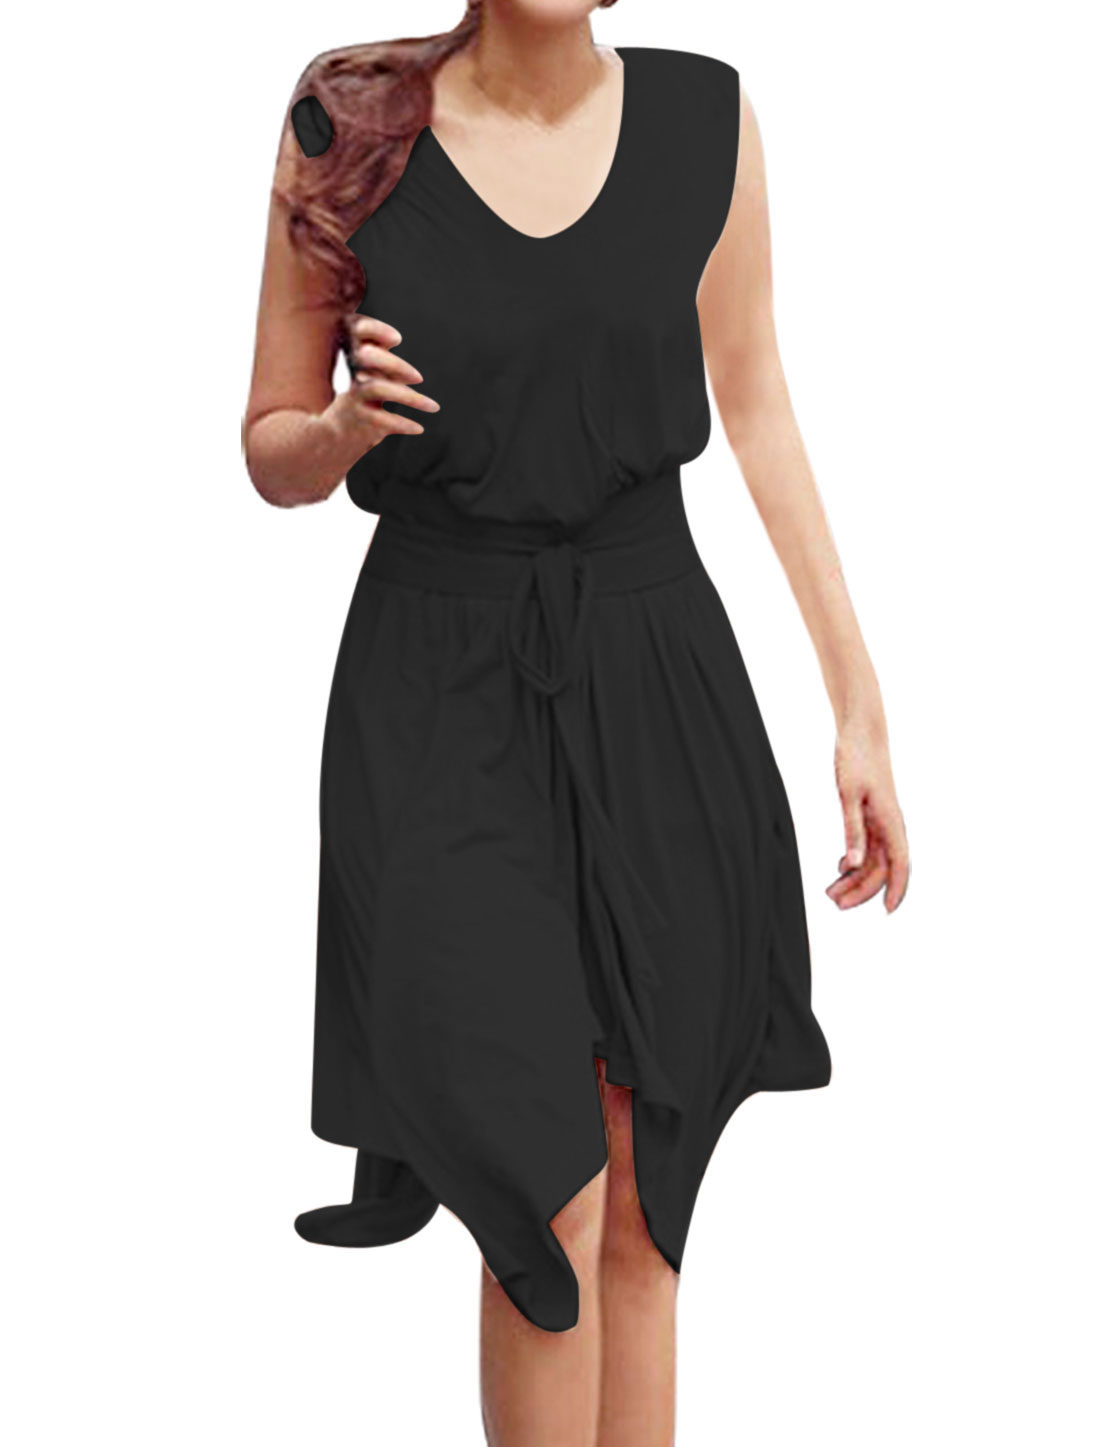 Woman Deep V Neck Sleeveless Blcak Knee-Length Dress w Waistband S